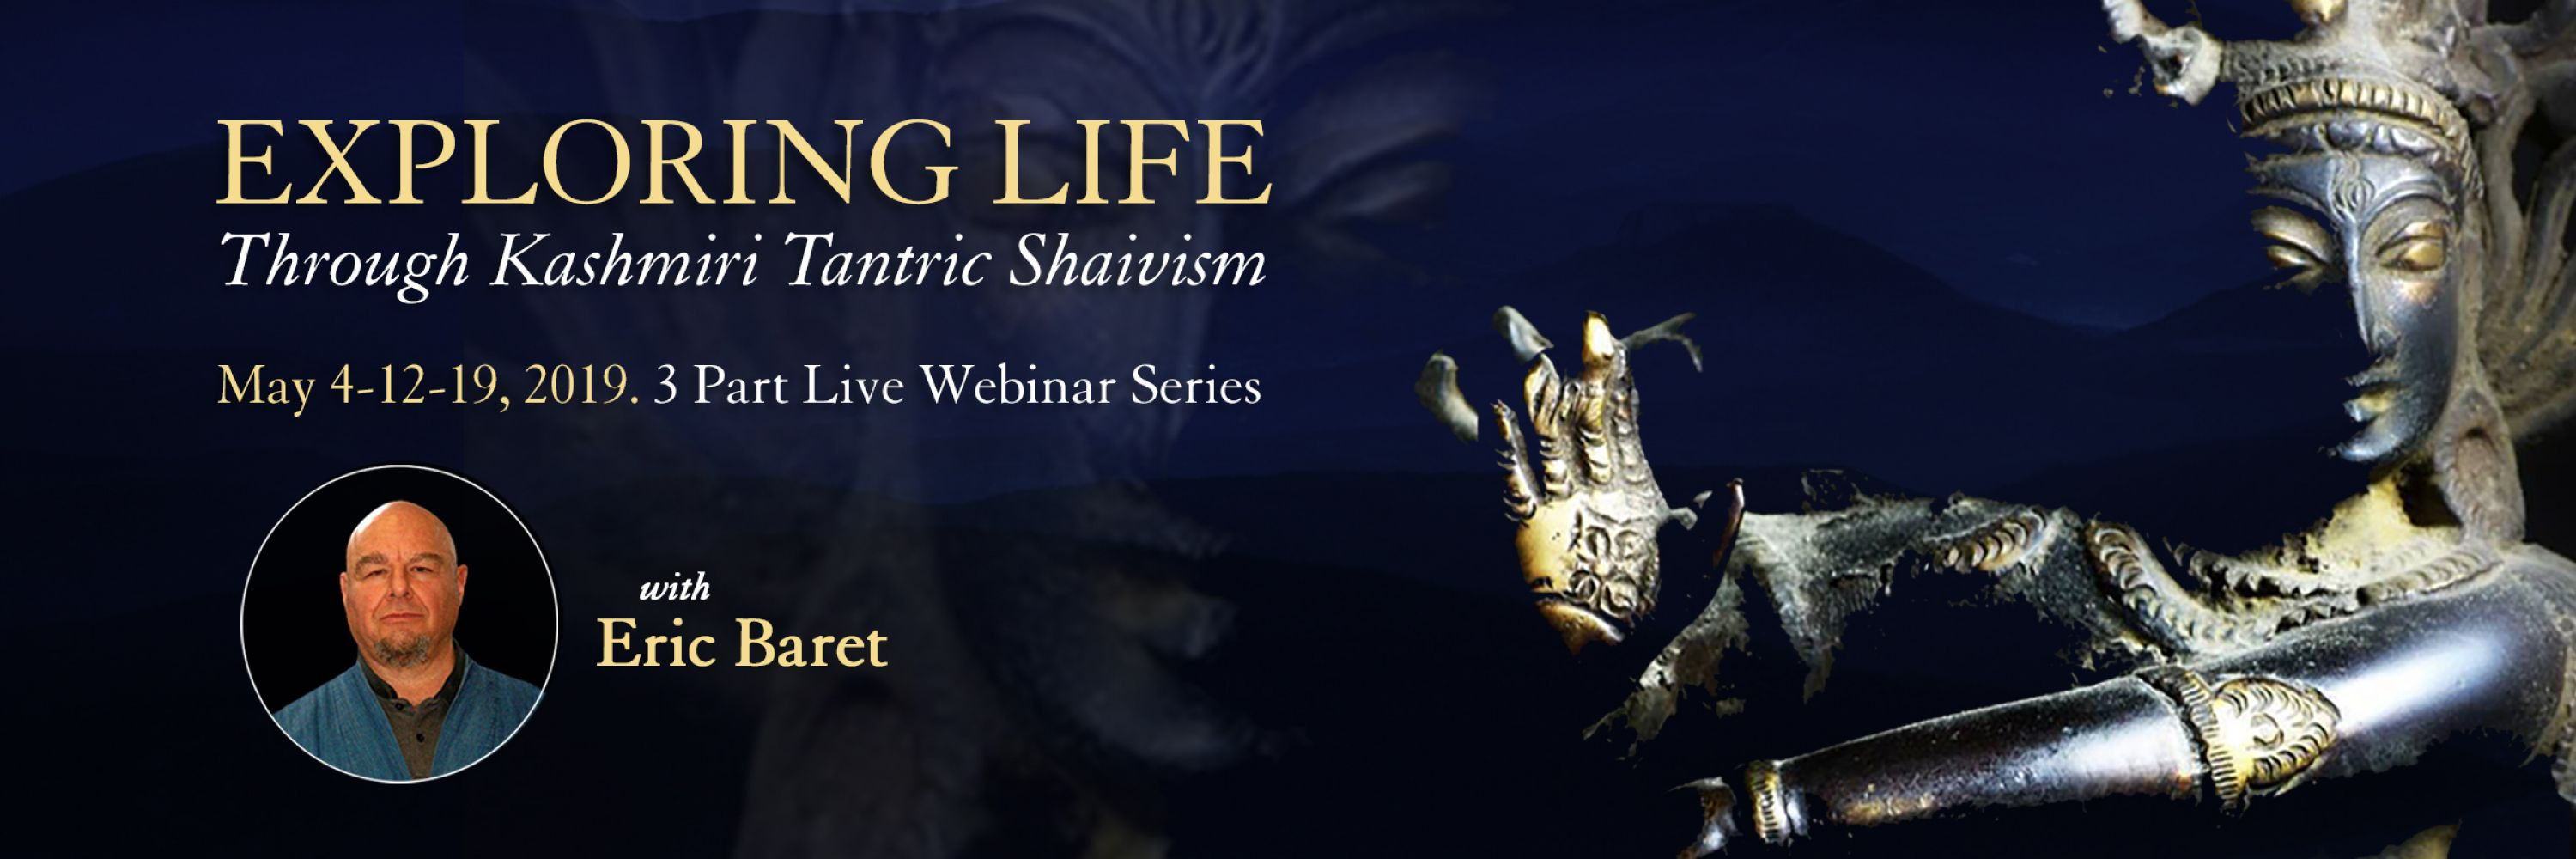 Exploring Life Through Kashmiri Tantric Shaivism: Q&A Sessions